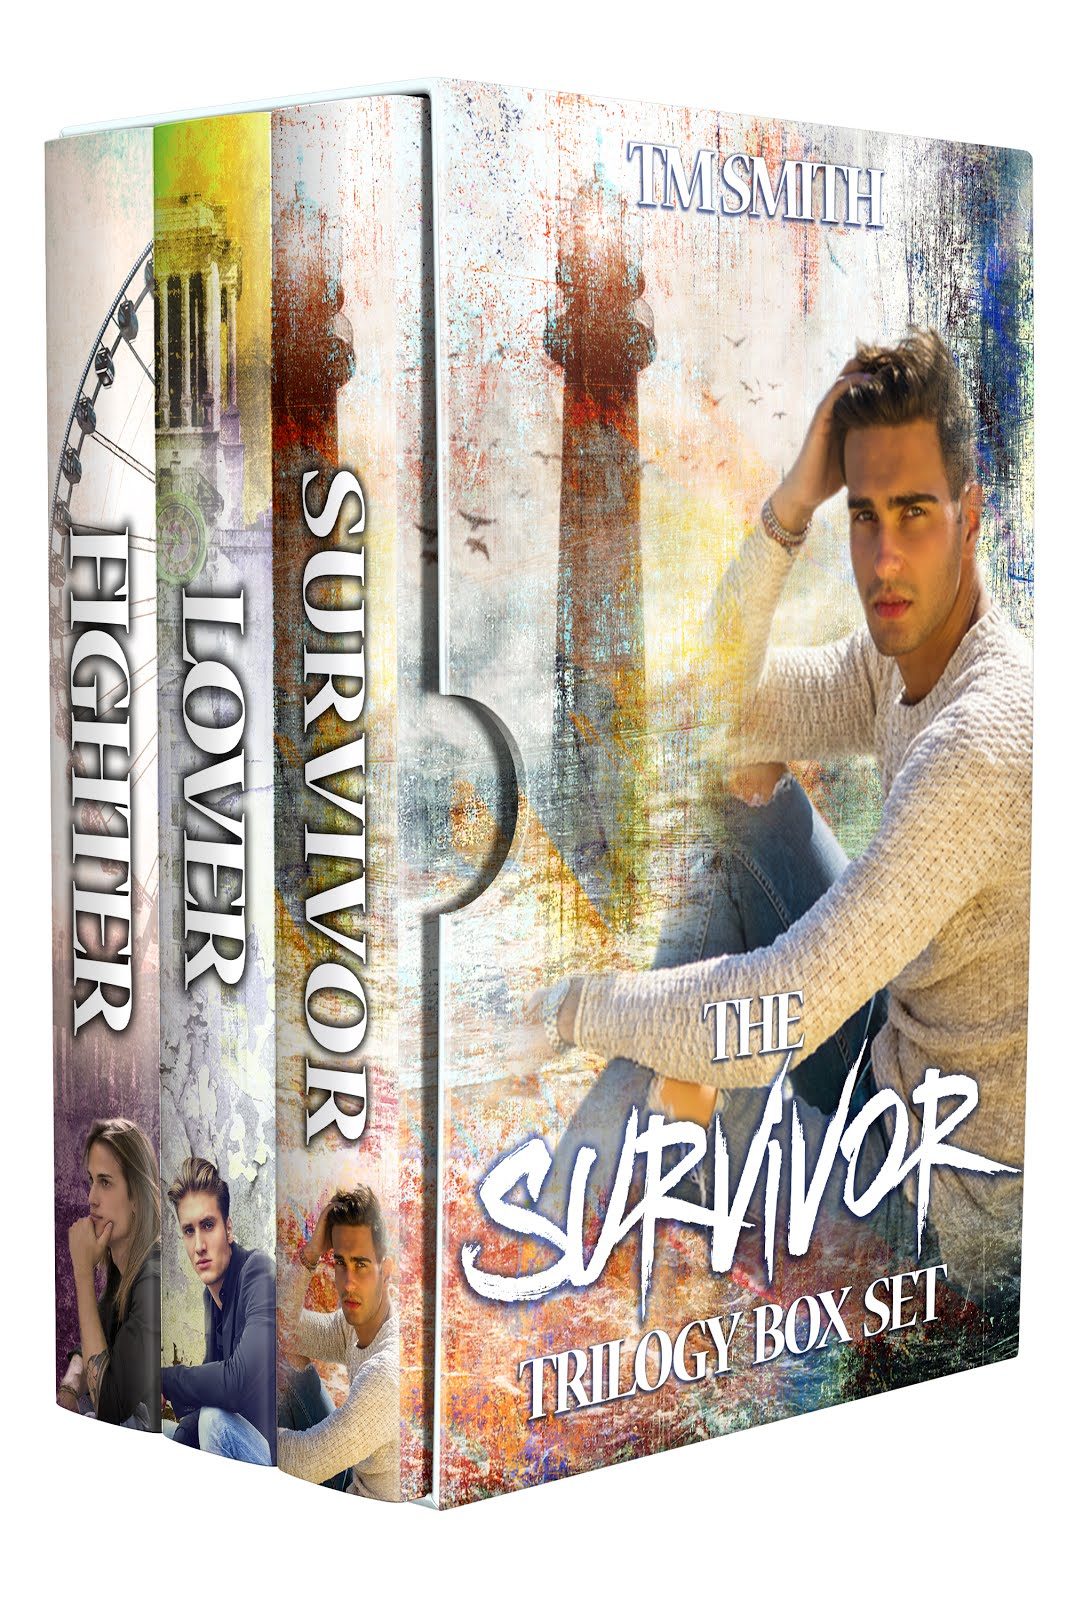 Survivor trilogy box set Free with Kindle Unlimited.